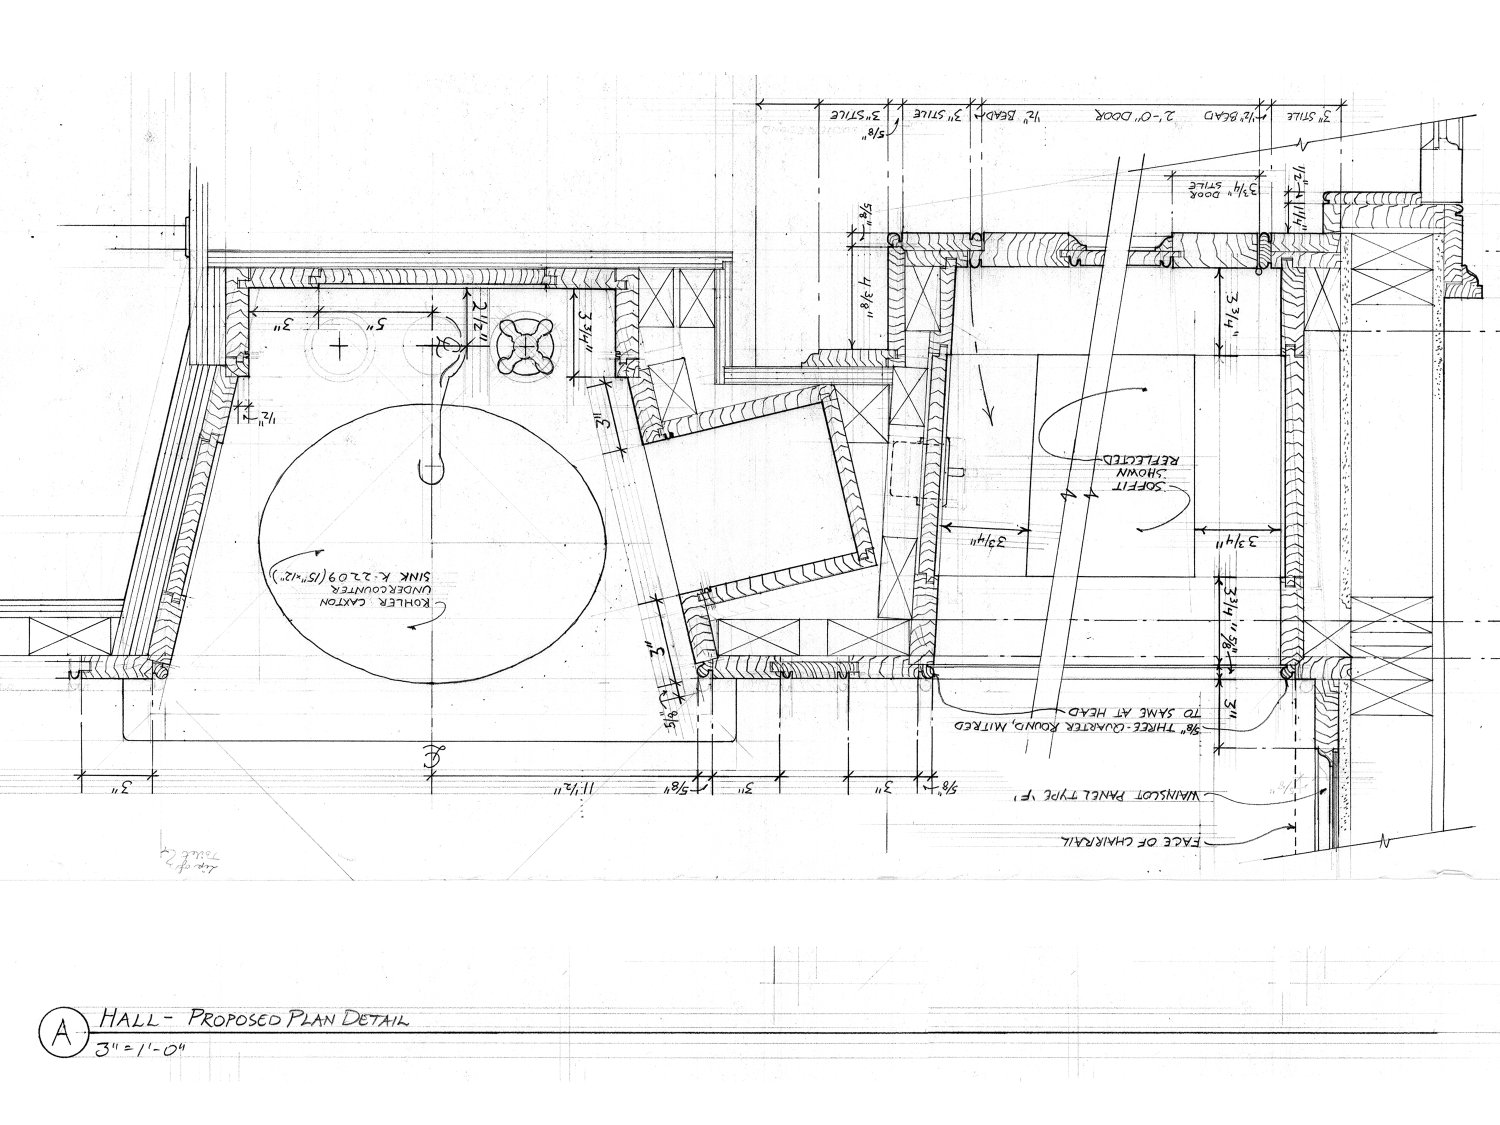 1-drawing_bath-hall plan_adusted.jpg